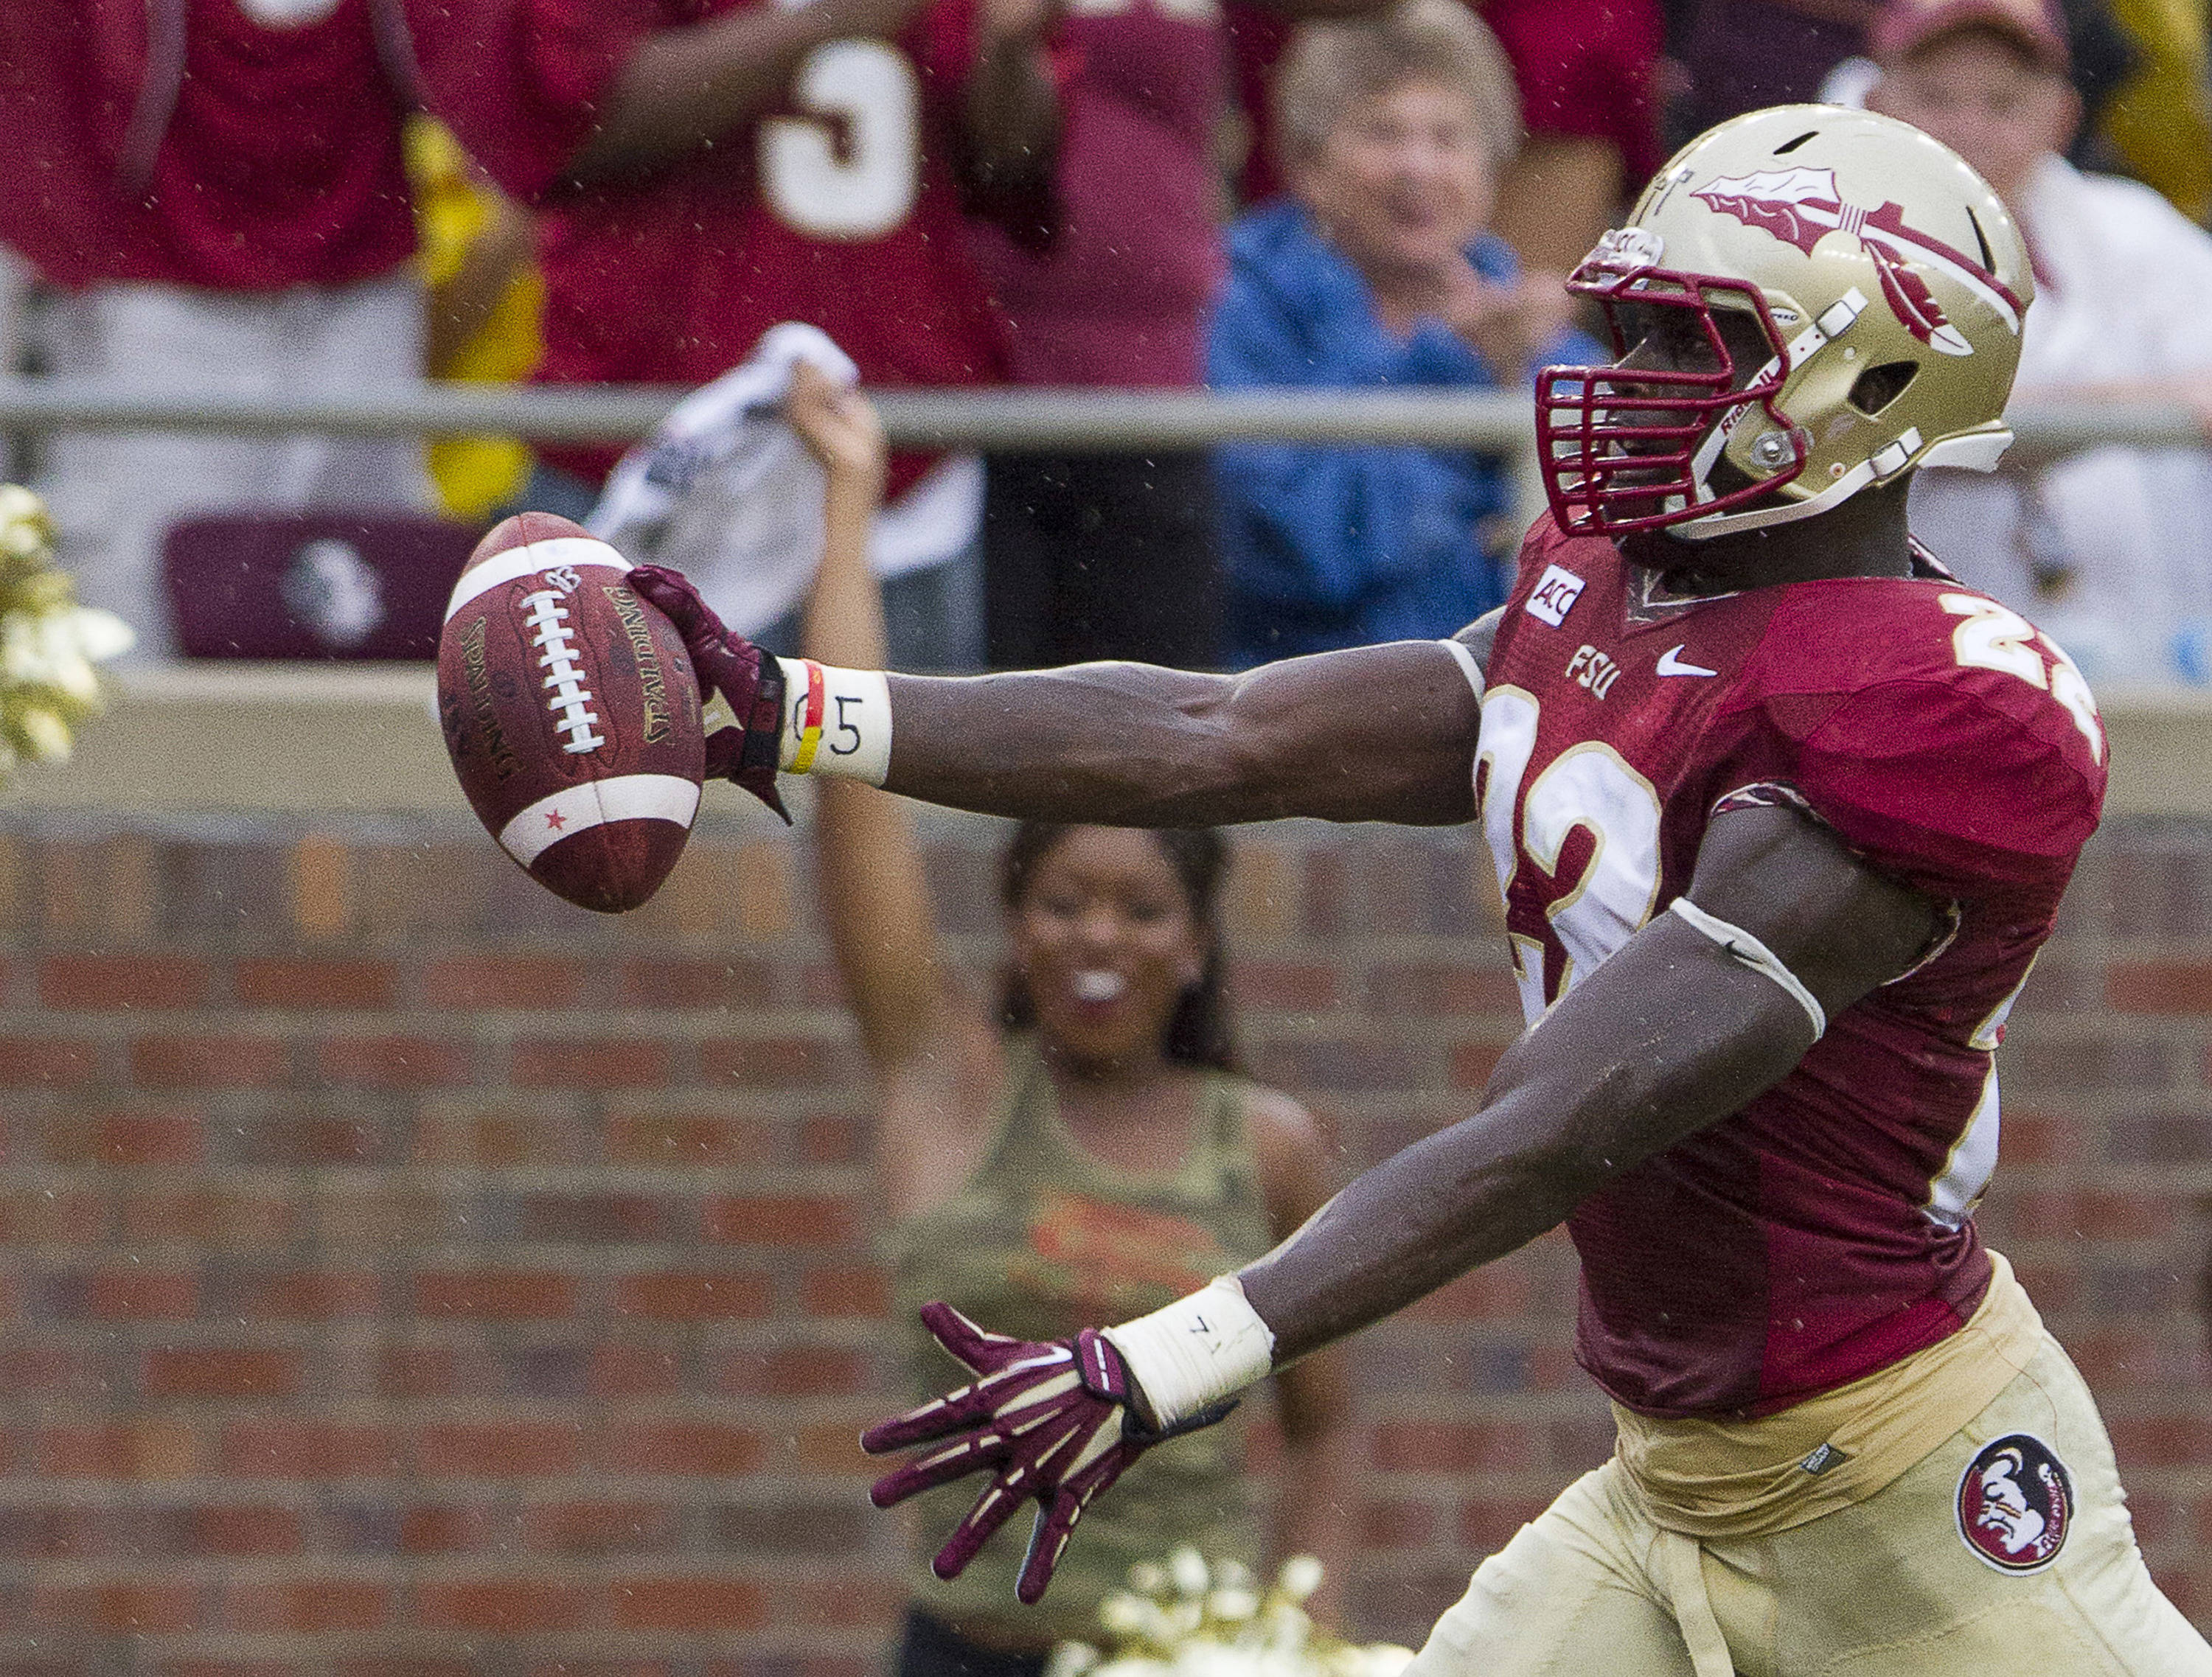 Telvin Smith (22) scores a touchdown after an interception during FSU Football's 54-6 win over Bethune-Cookman on September 21, 2013 in Tallahassee, Fla